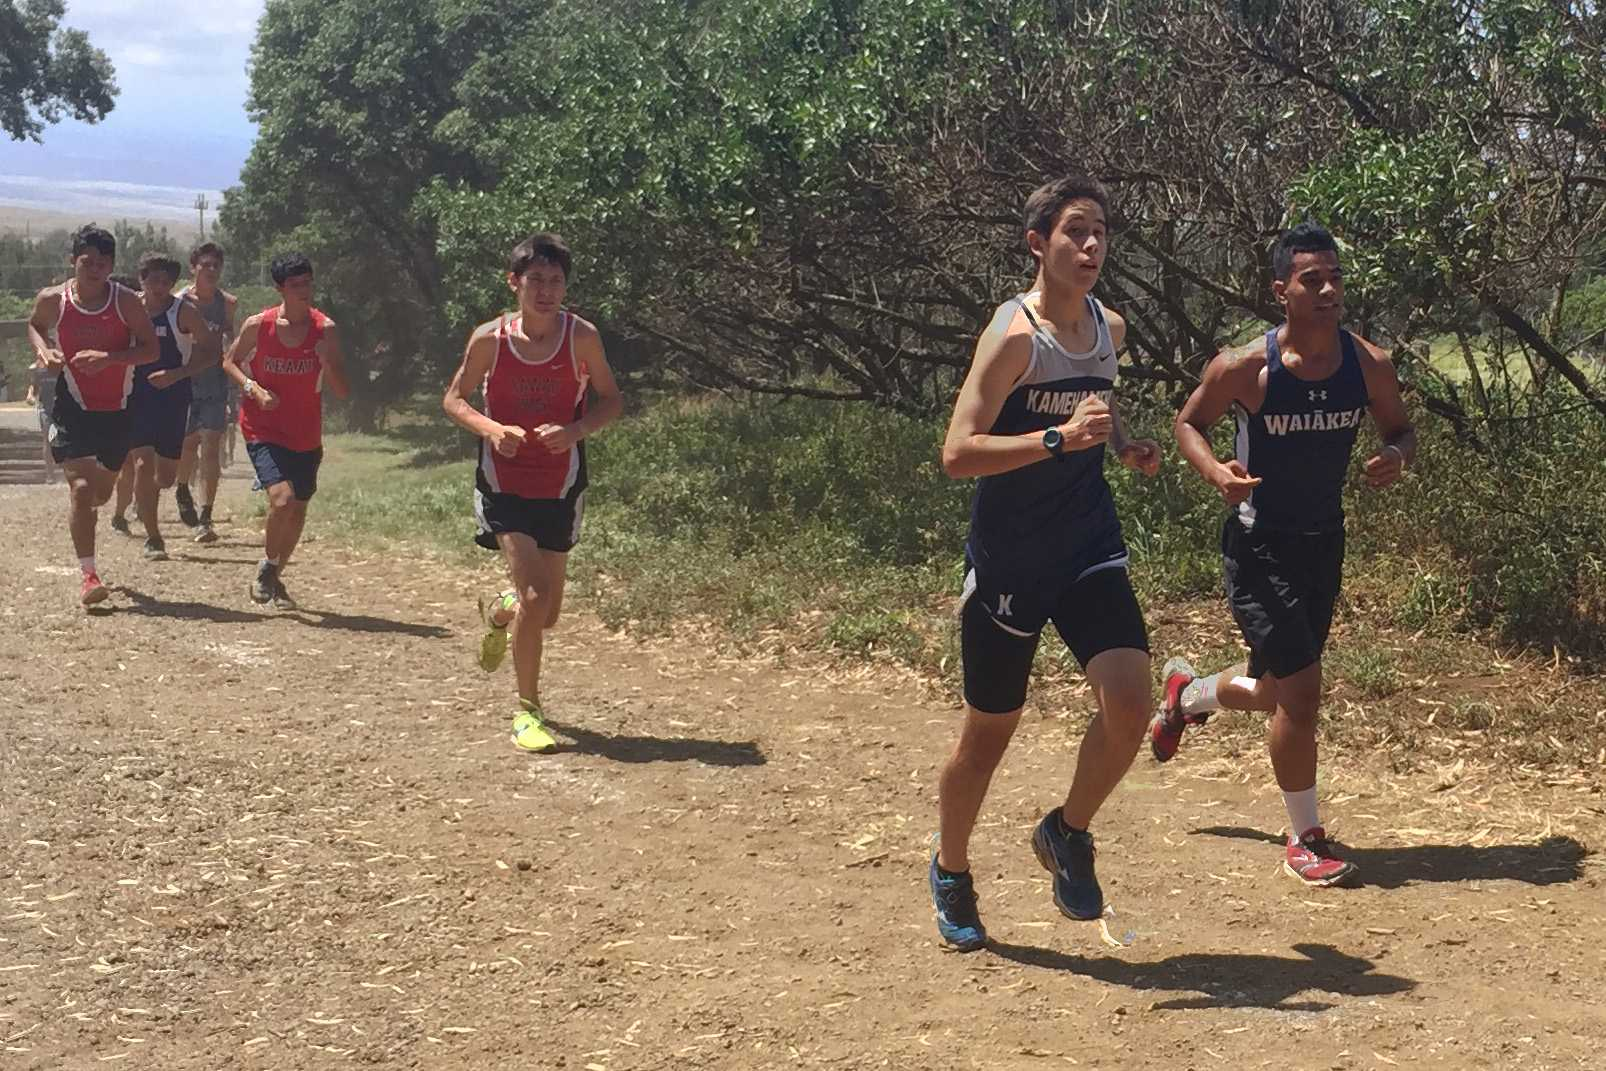 Sophomore Cy Ornellas runs at the HPA invitational meet held on the Big Island, Sept. 24. Athletes from around the state got a try at the state competition course.